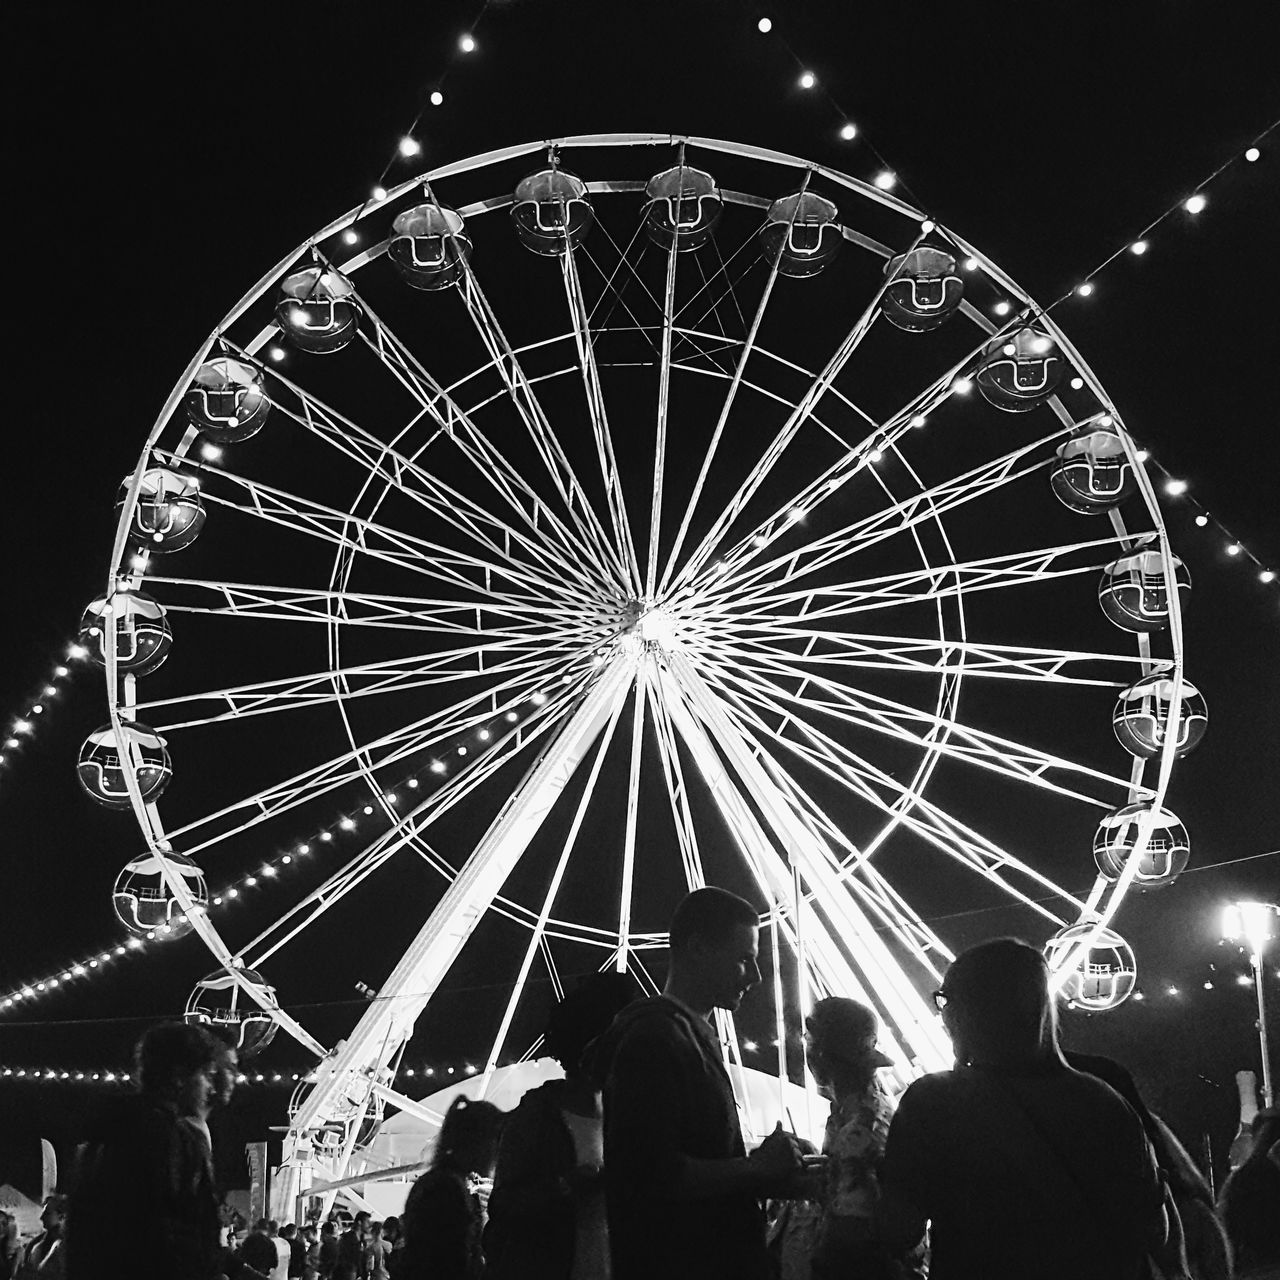 arts culture and entertainment, night, illuminated, leisure activity, amusement park, ferris wheel, large group of people, real people, enjoyment, outdoors, amusement park ride, men, low angle view, women, lifestyles, sky, crowd, people